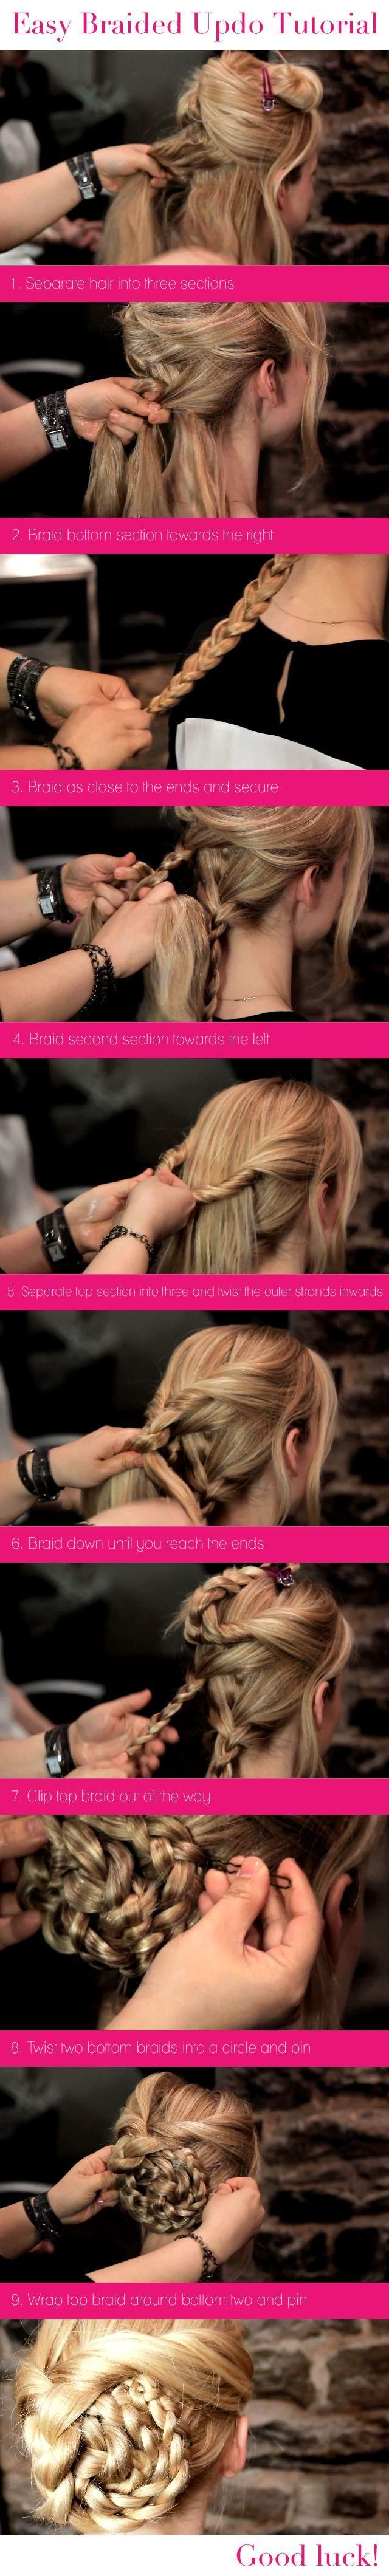 easy braided